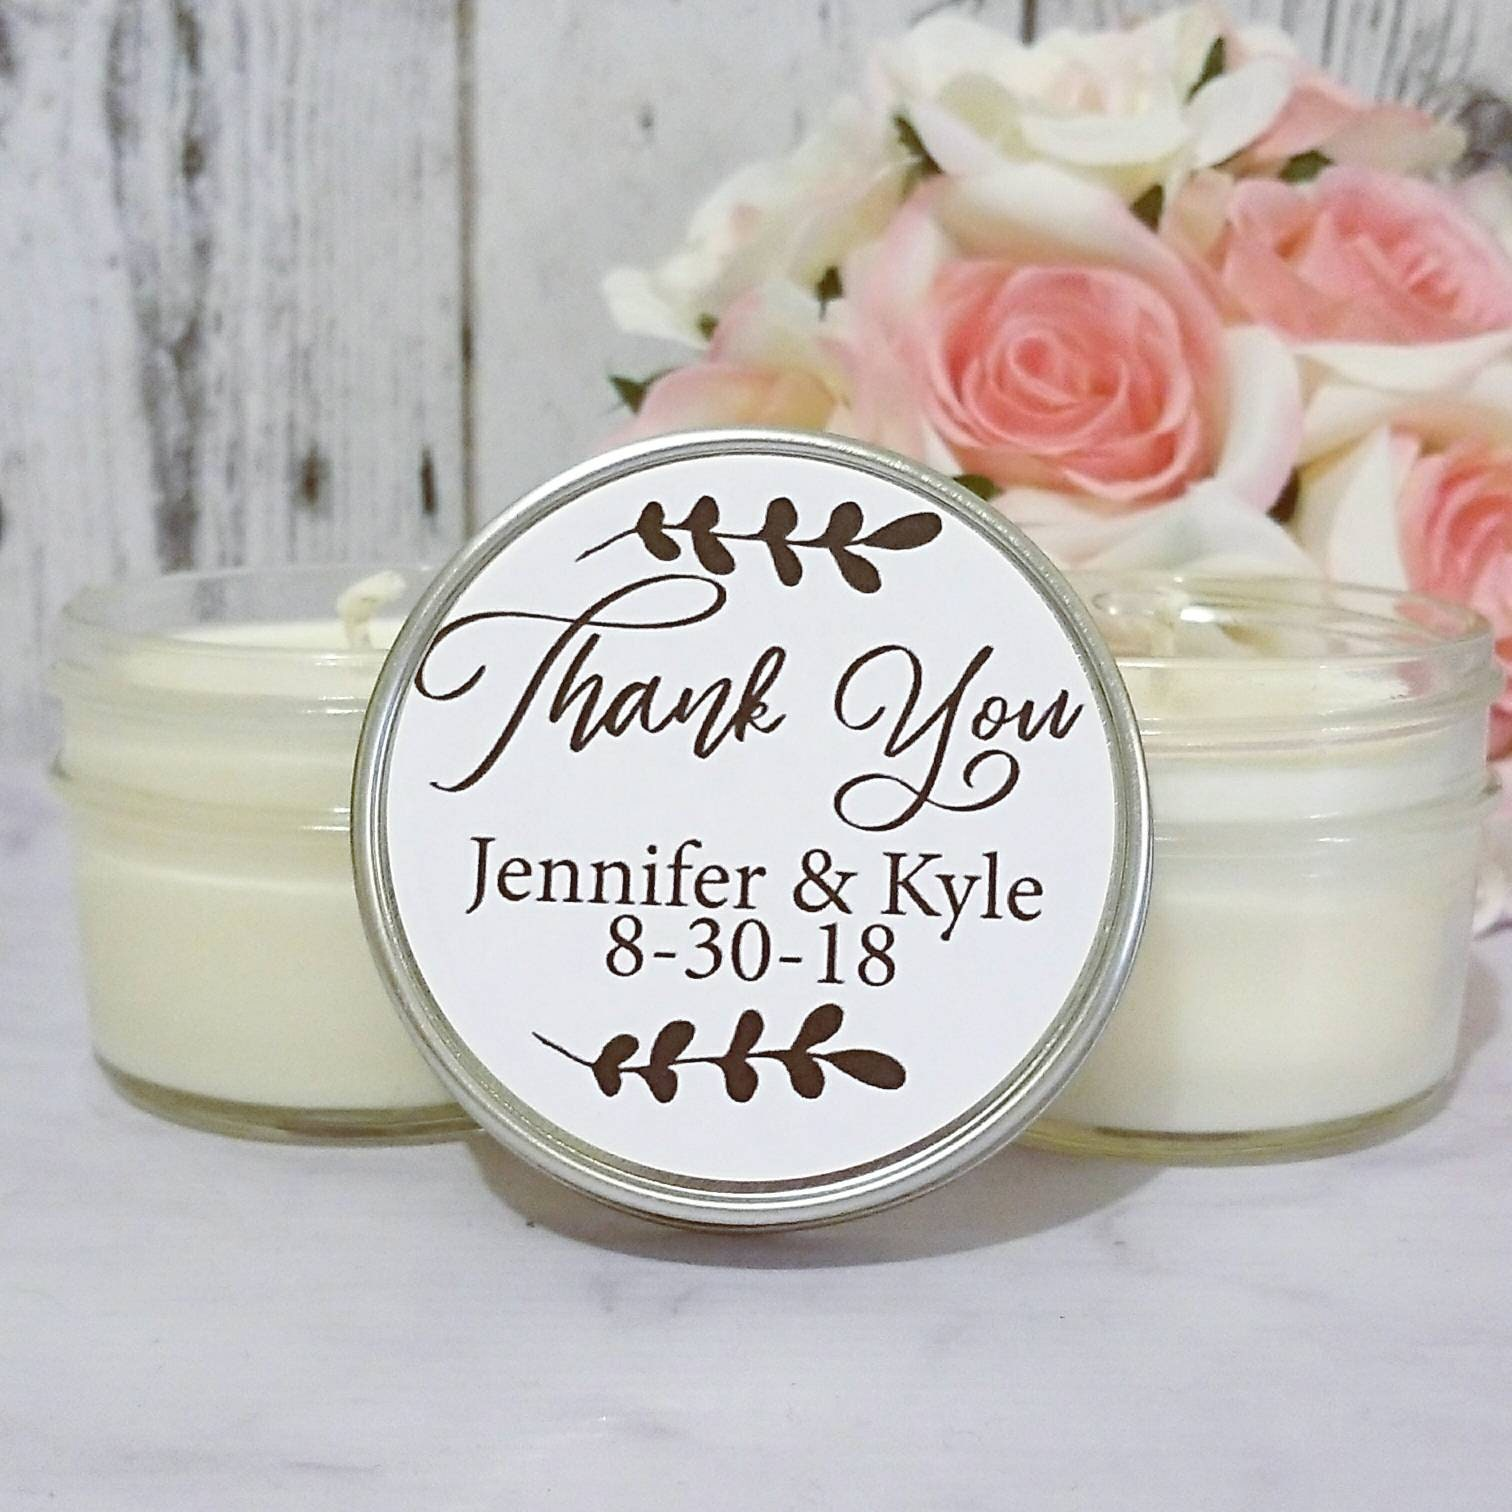 Black and white Wedding Favors - Wedding Candle Favors - Black Tie ...